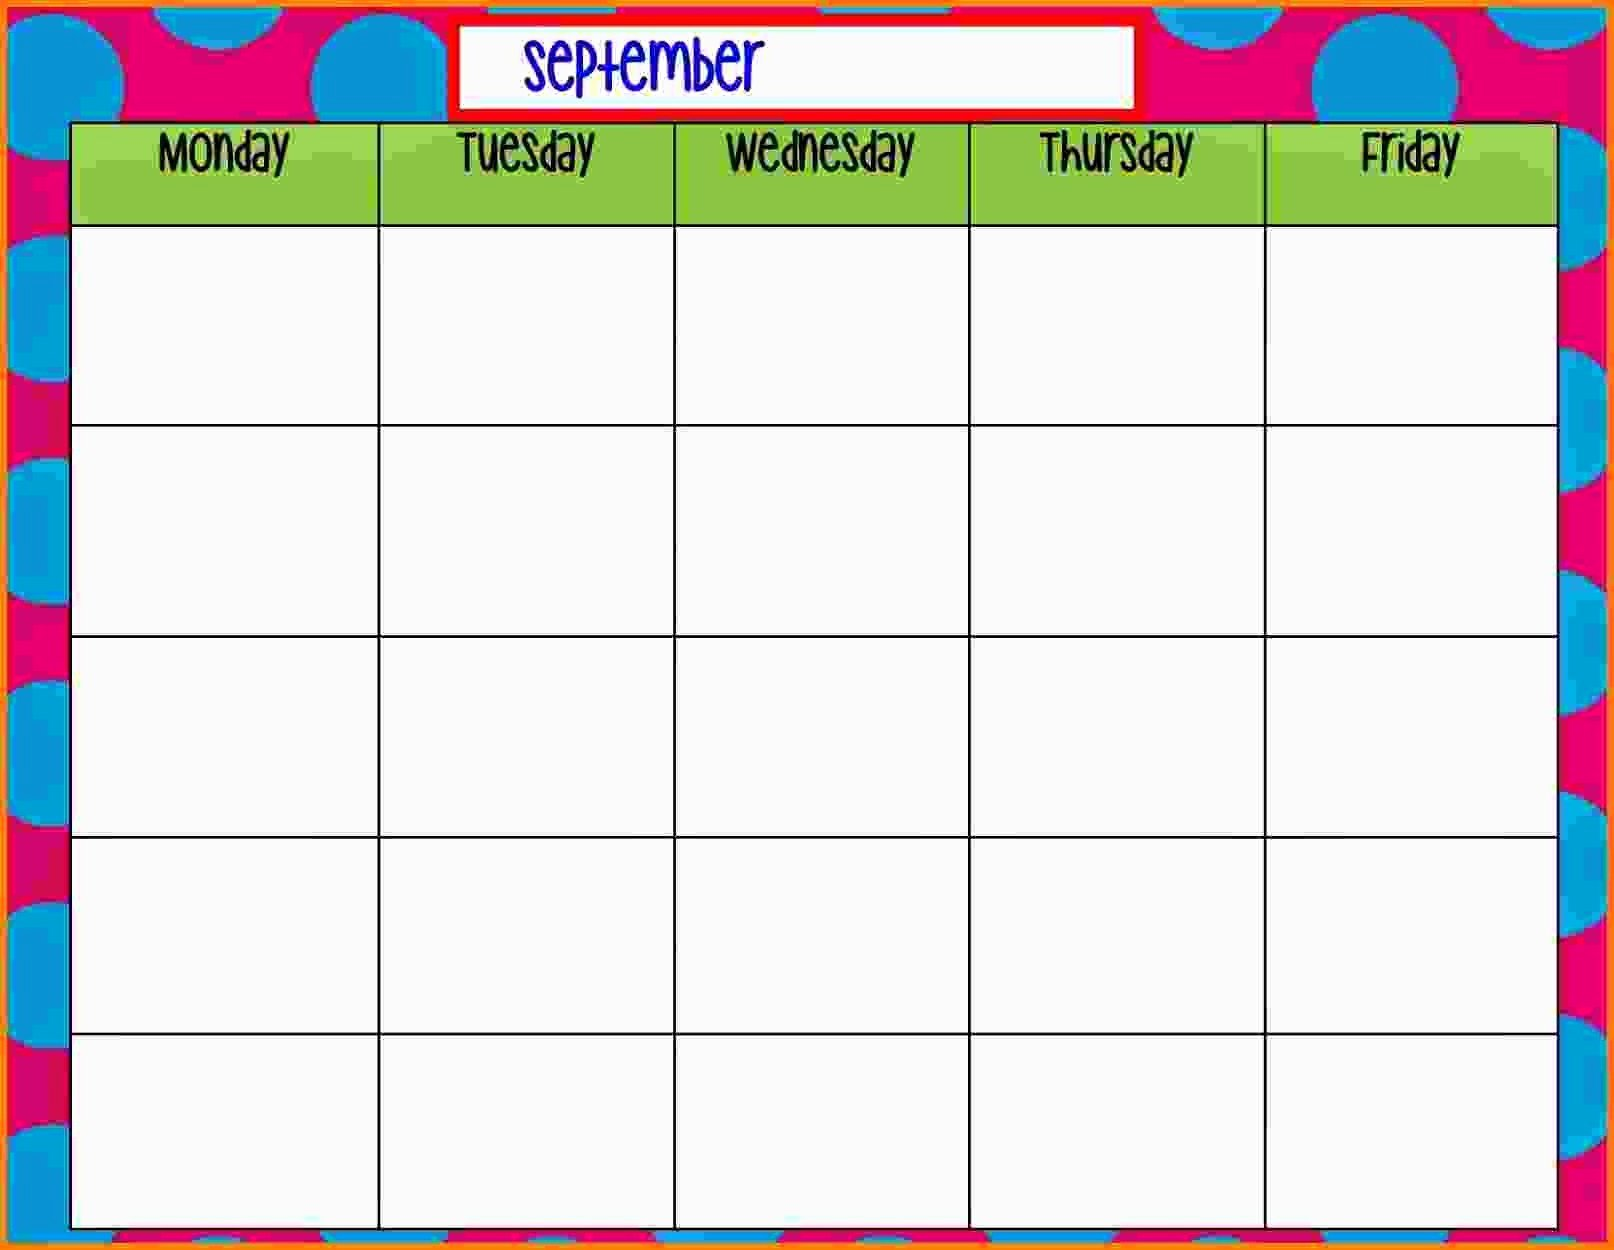 Monday to Friday Schedule Template Fresh Free Printable Blank Calendar Monday Through Friday 2018